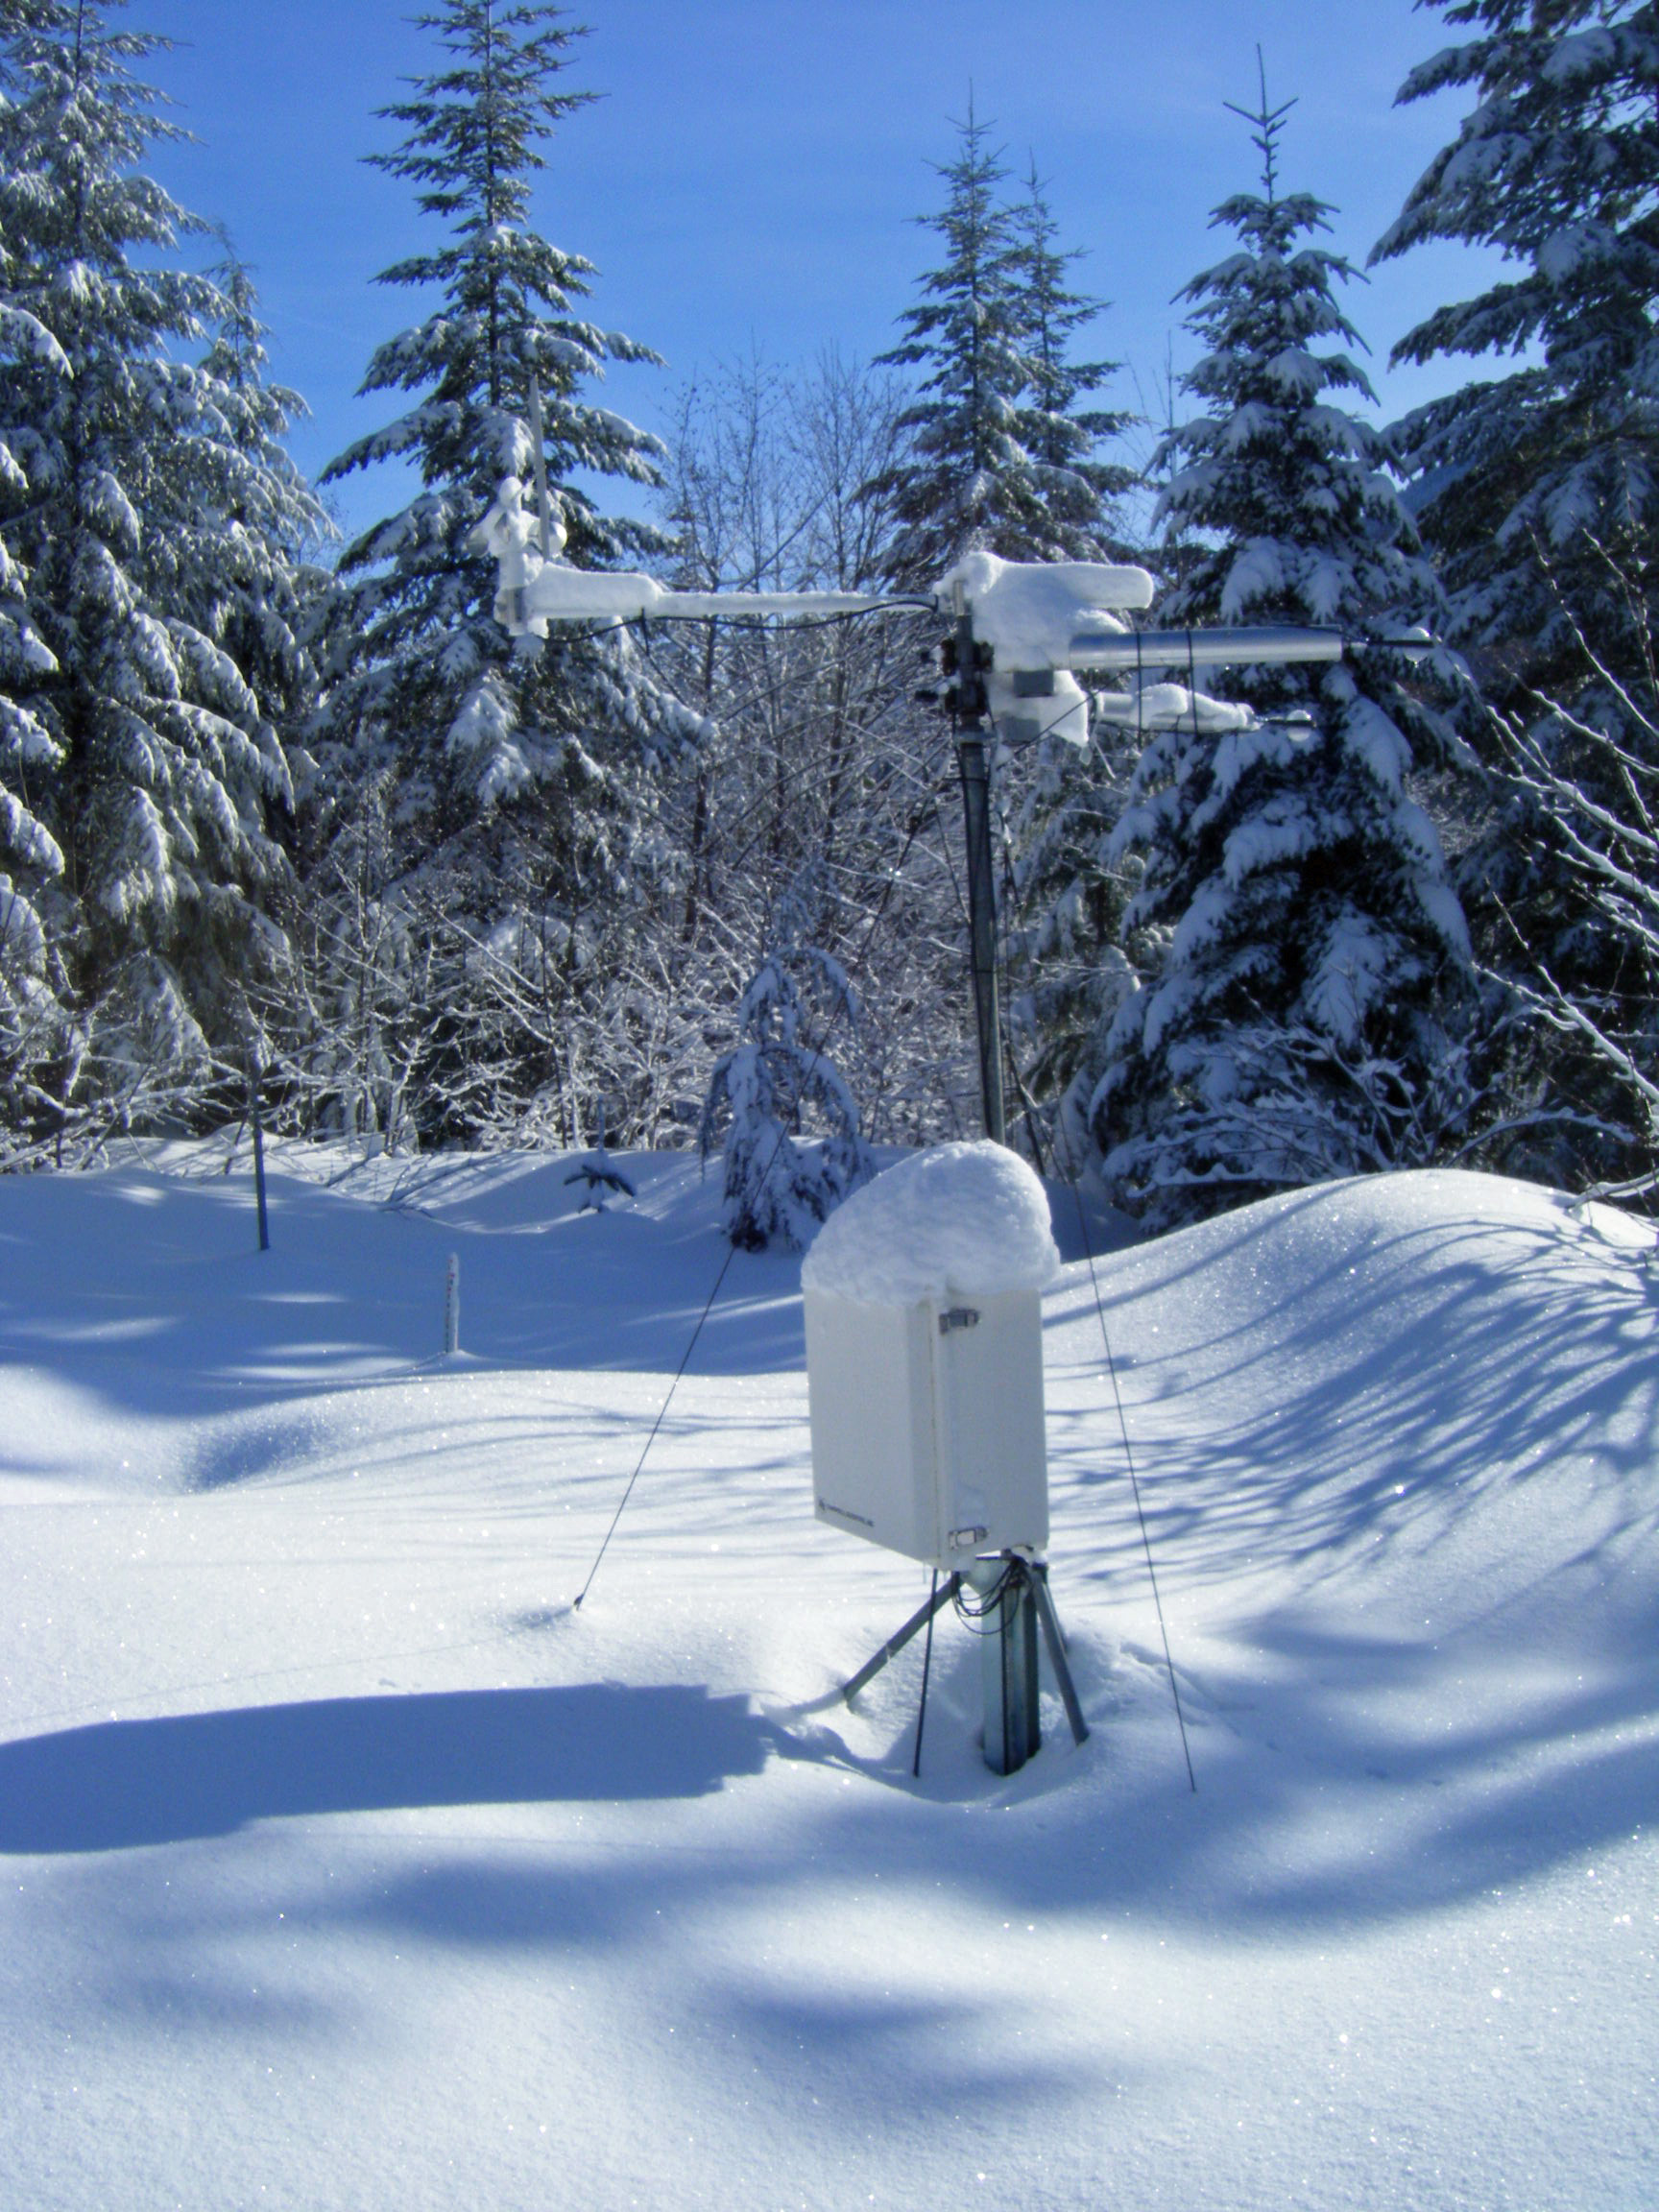 Snow covers the ground and instruments in an open gap site in the watershed.